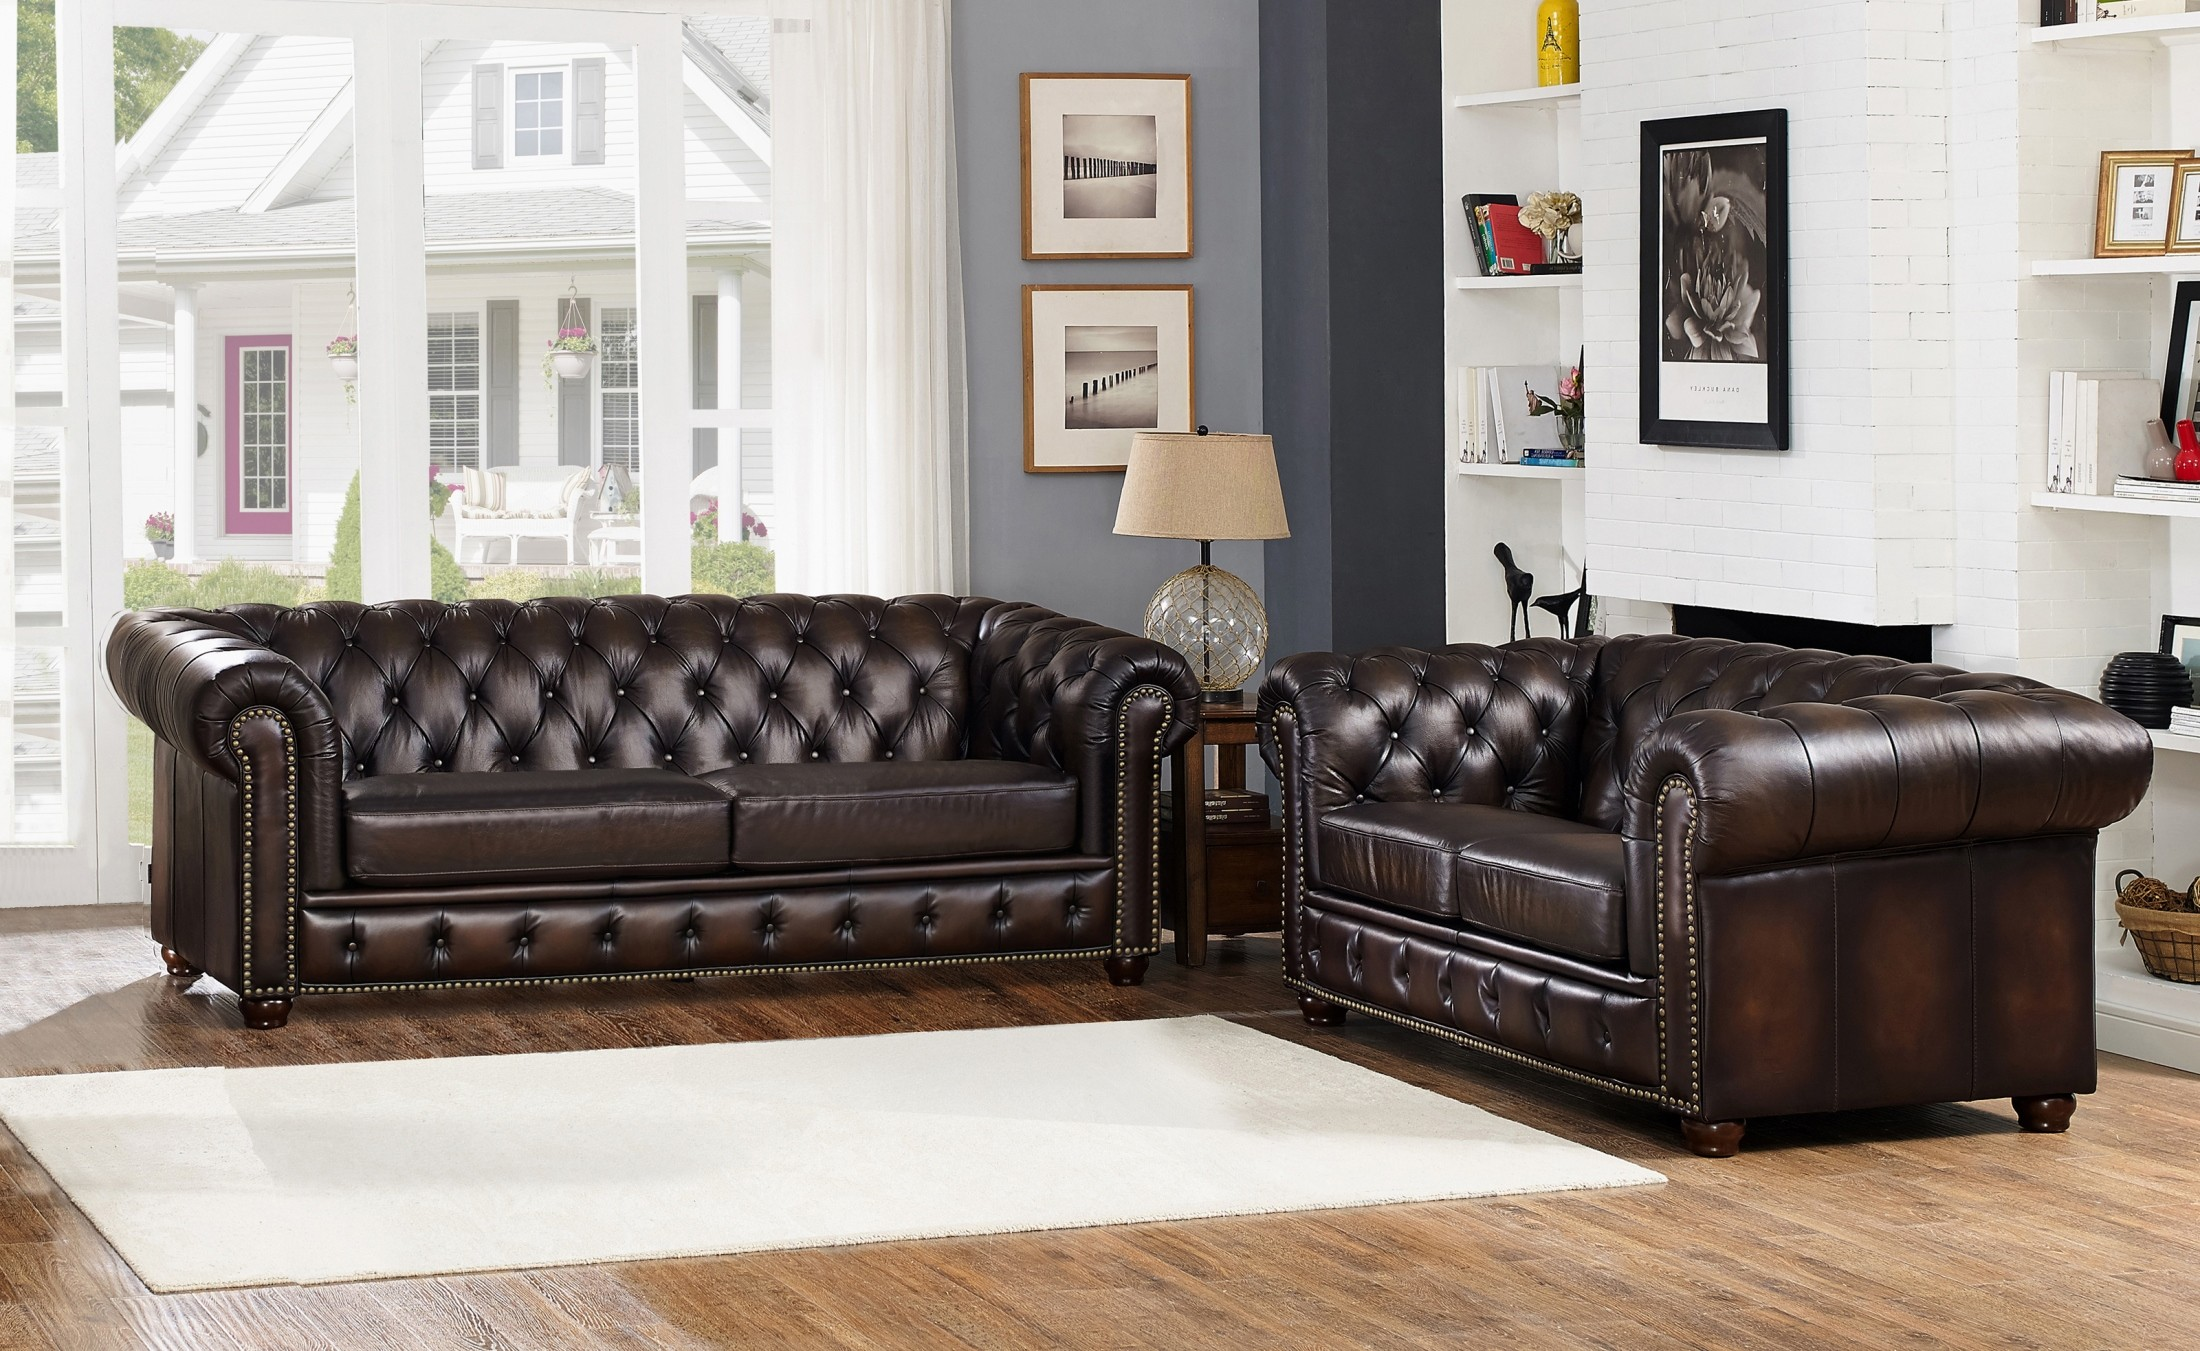 albany brown leather living room set from amax leather coleman furniture. Black Bedroom Furniture Sets. Home Design Ideas